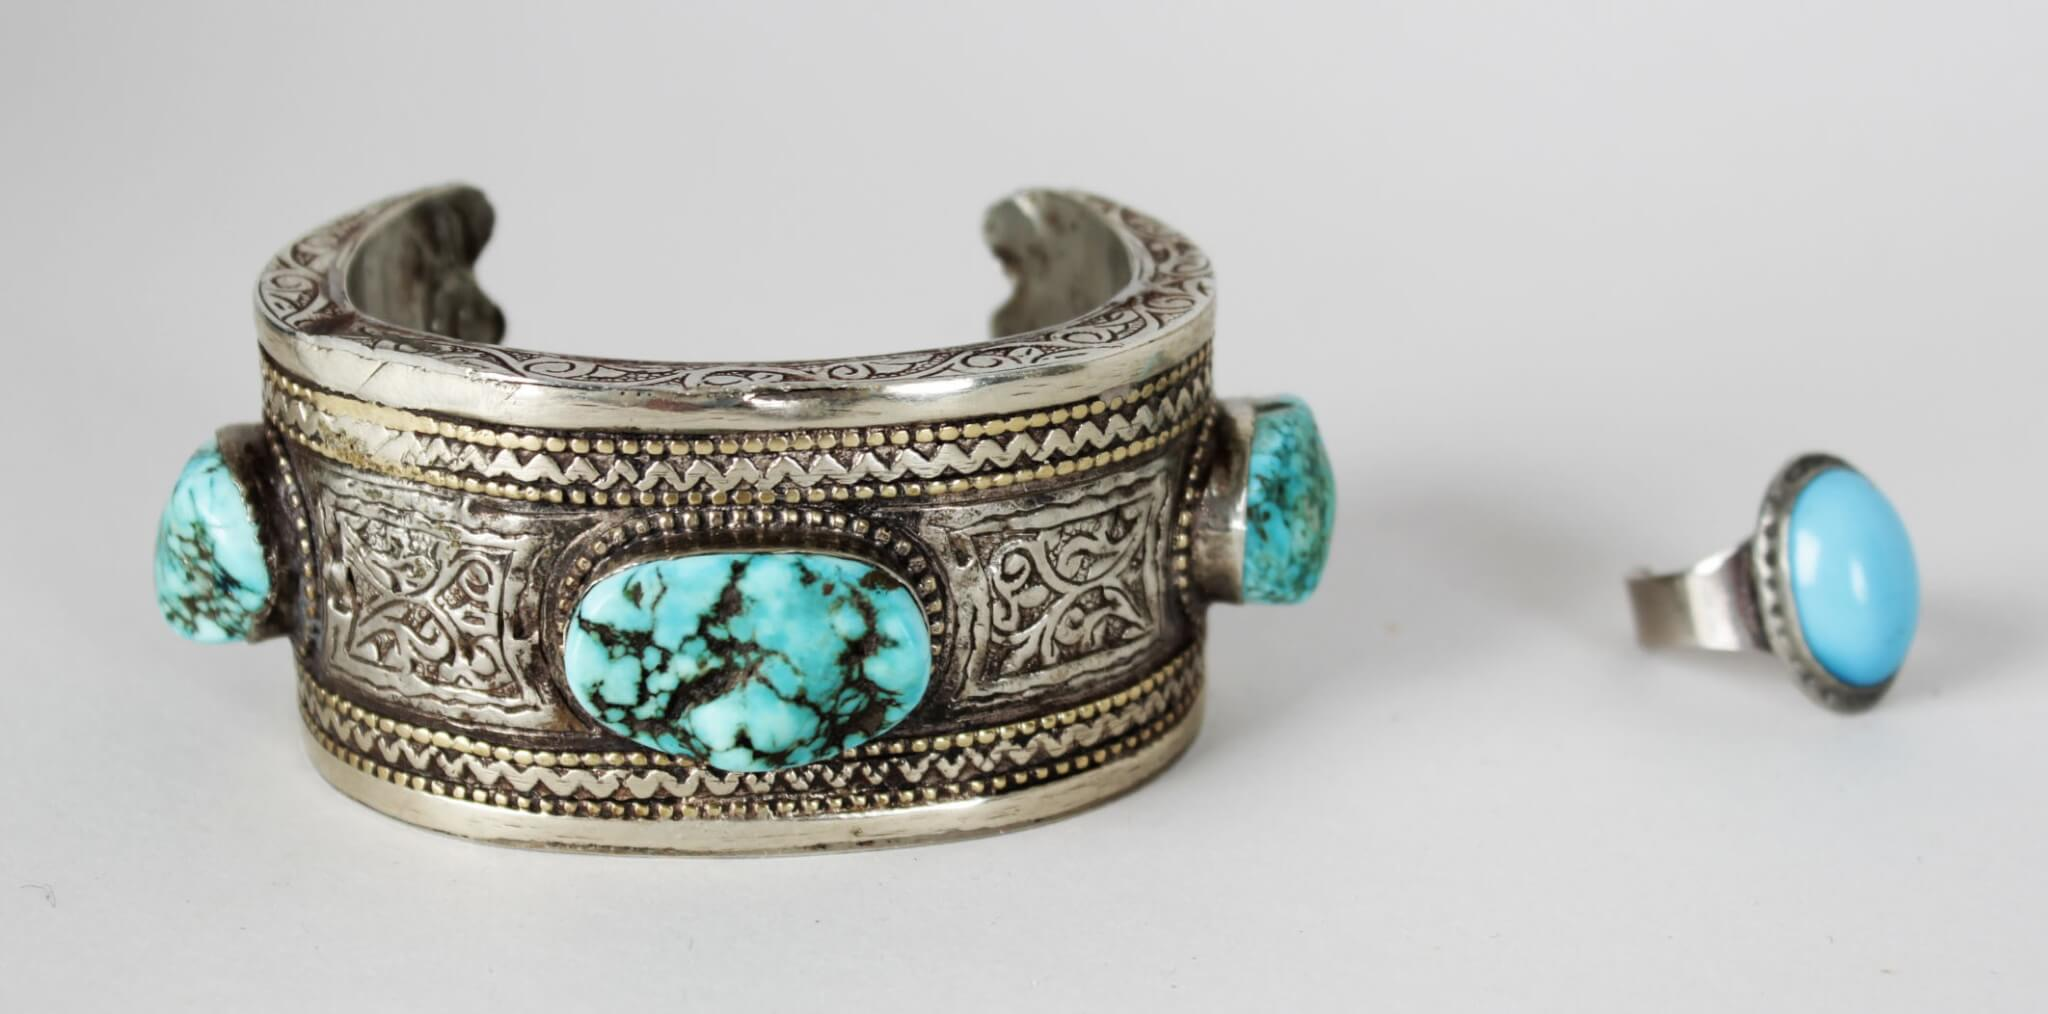 for gift dropshipping turquoise bangle in bracelet from head penny jewelry bangles indian bracelets item american native vercret silver